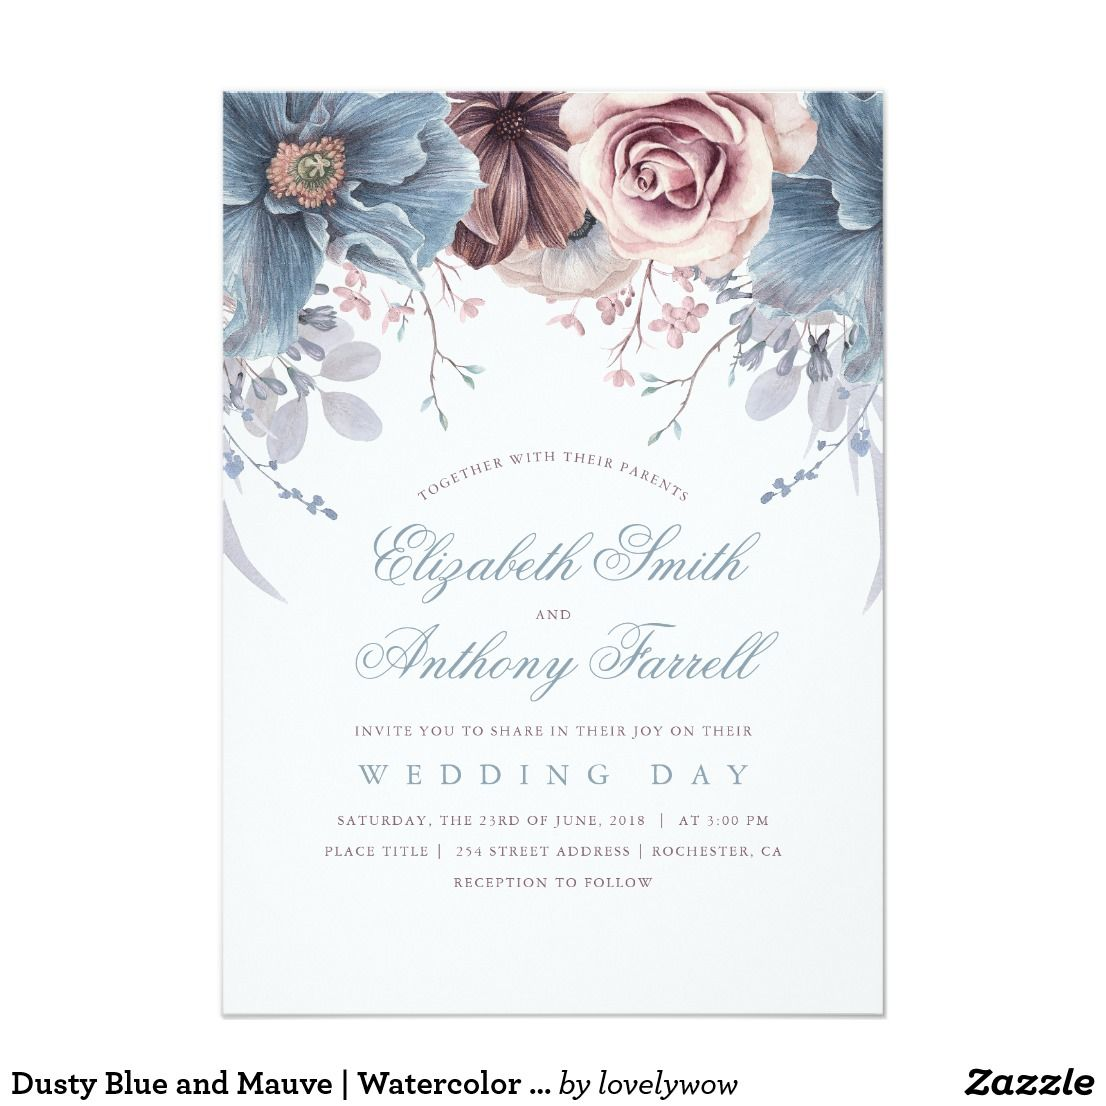 Dusty Blue And Mauve Watercolor Floral Wedding Invitation Zazzle